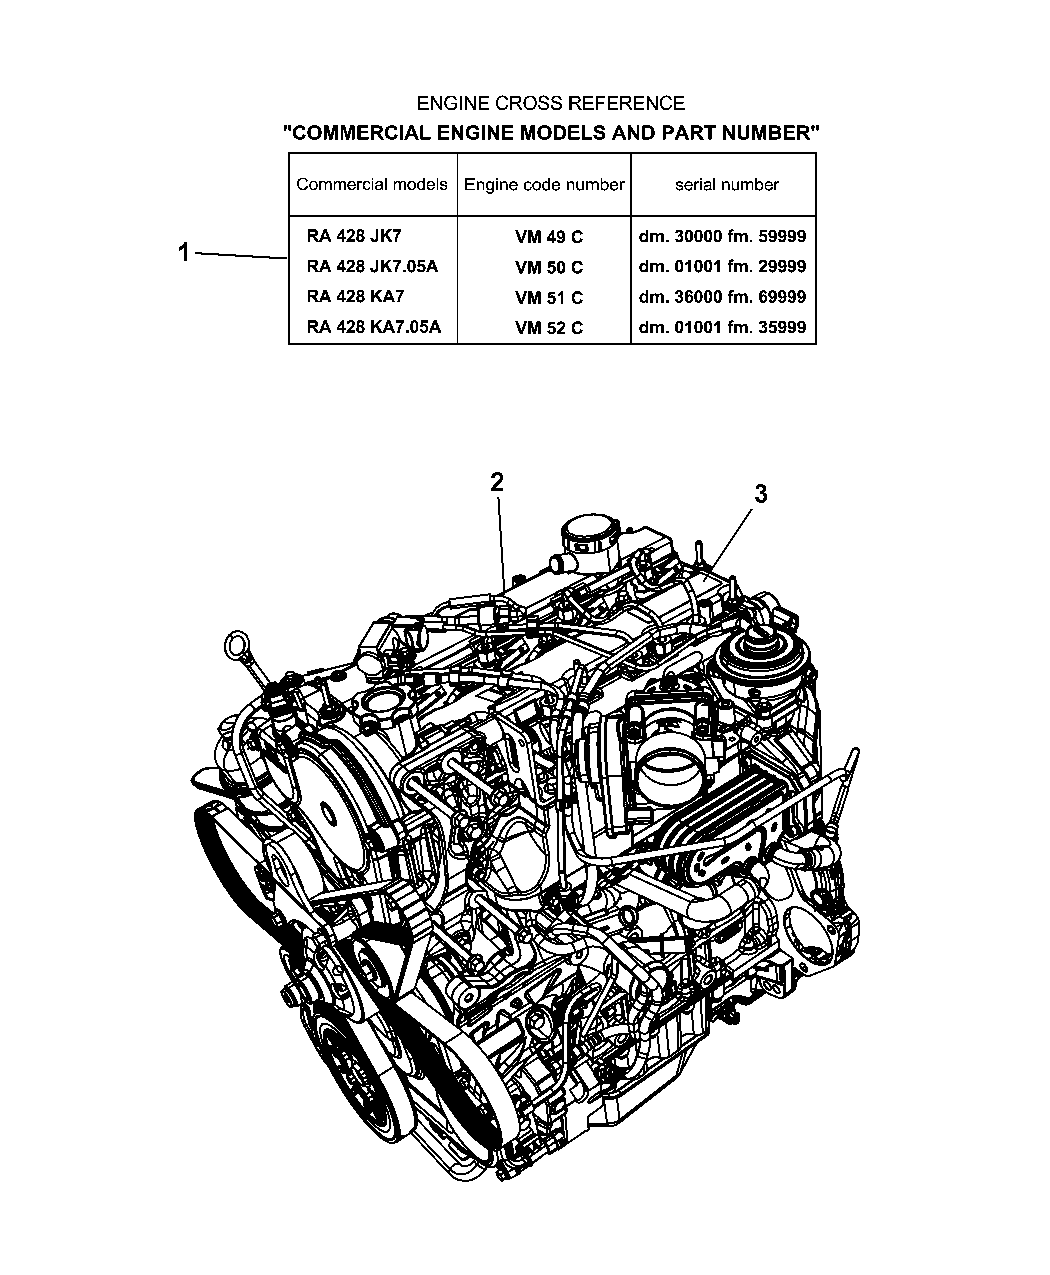 2007 Dodge Nitro Engine Assembly & Identification - Thumbnail 3